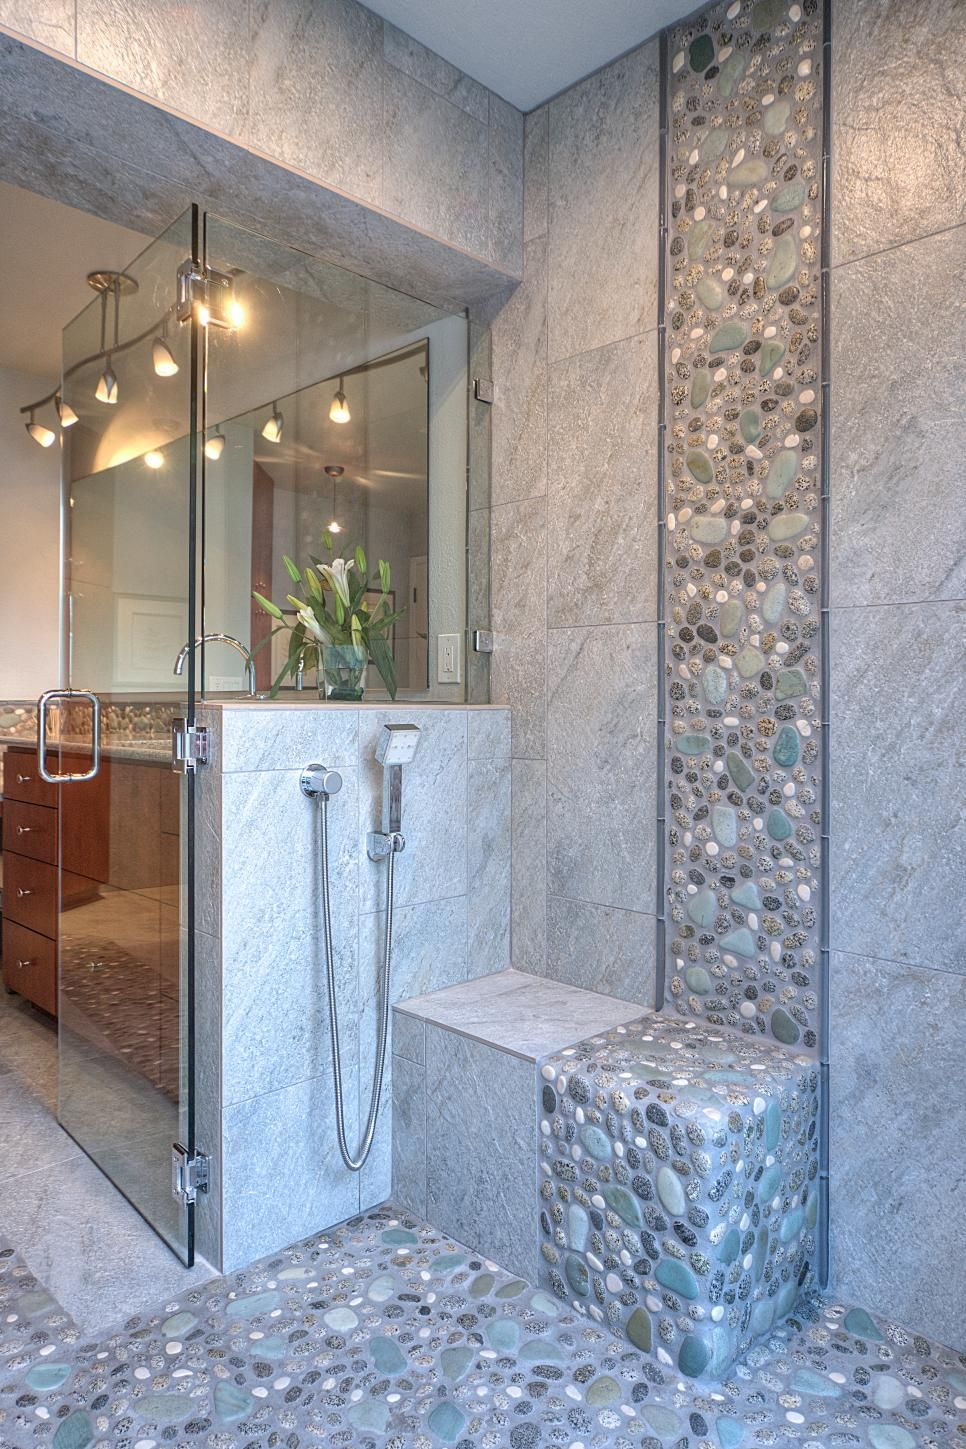 Frameless Glass Shower Panels And The Shower Door Add To The